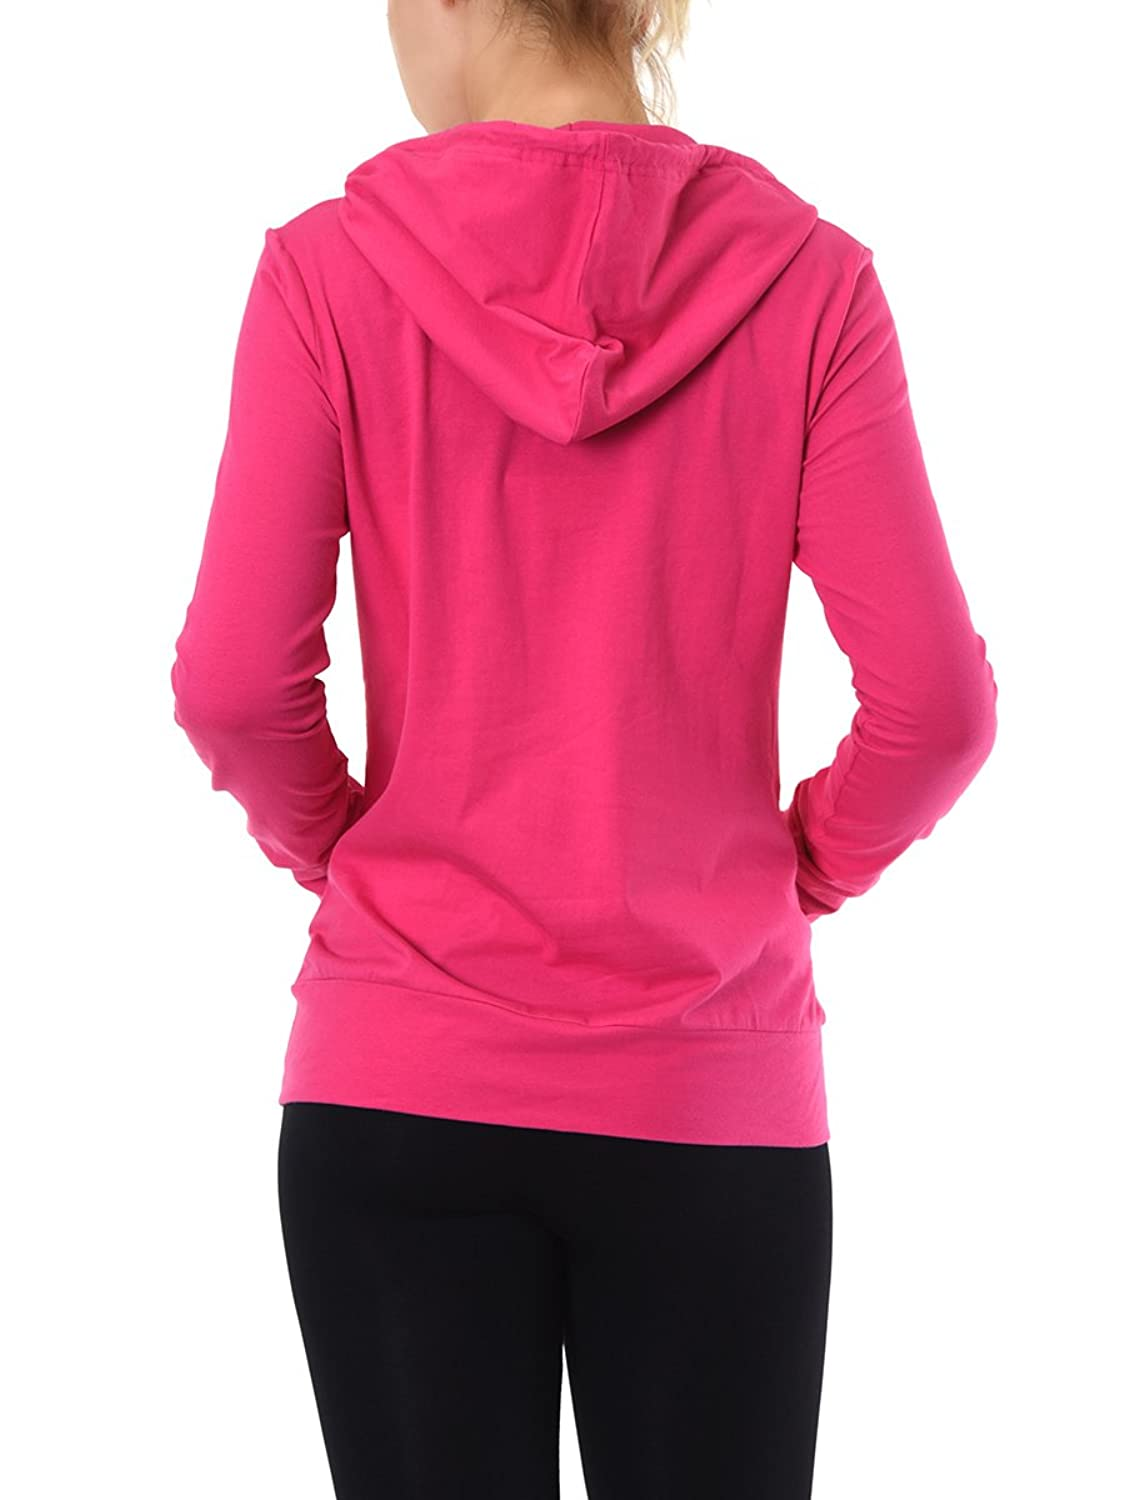 Teejoy Womens Cotton Hoodie Jacket Image 3